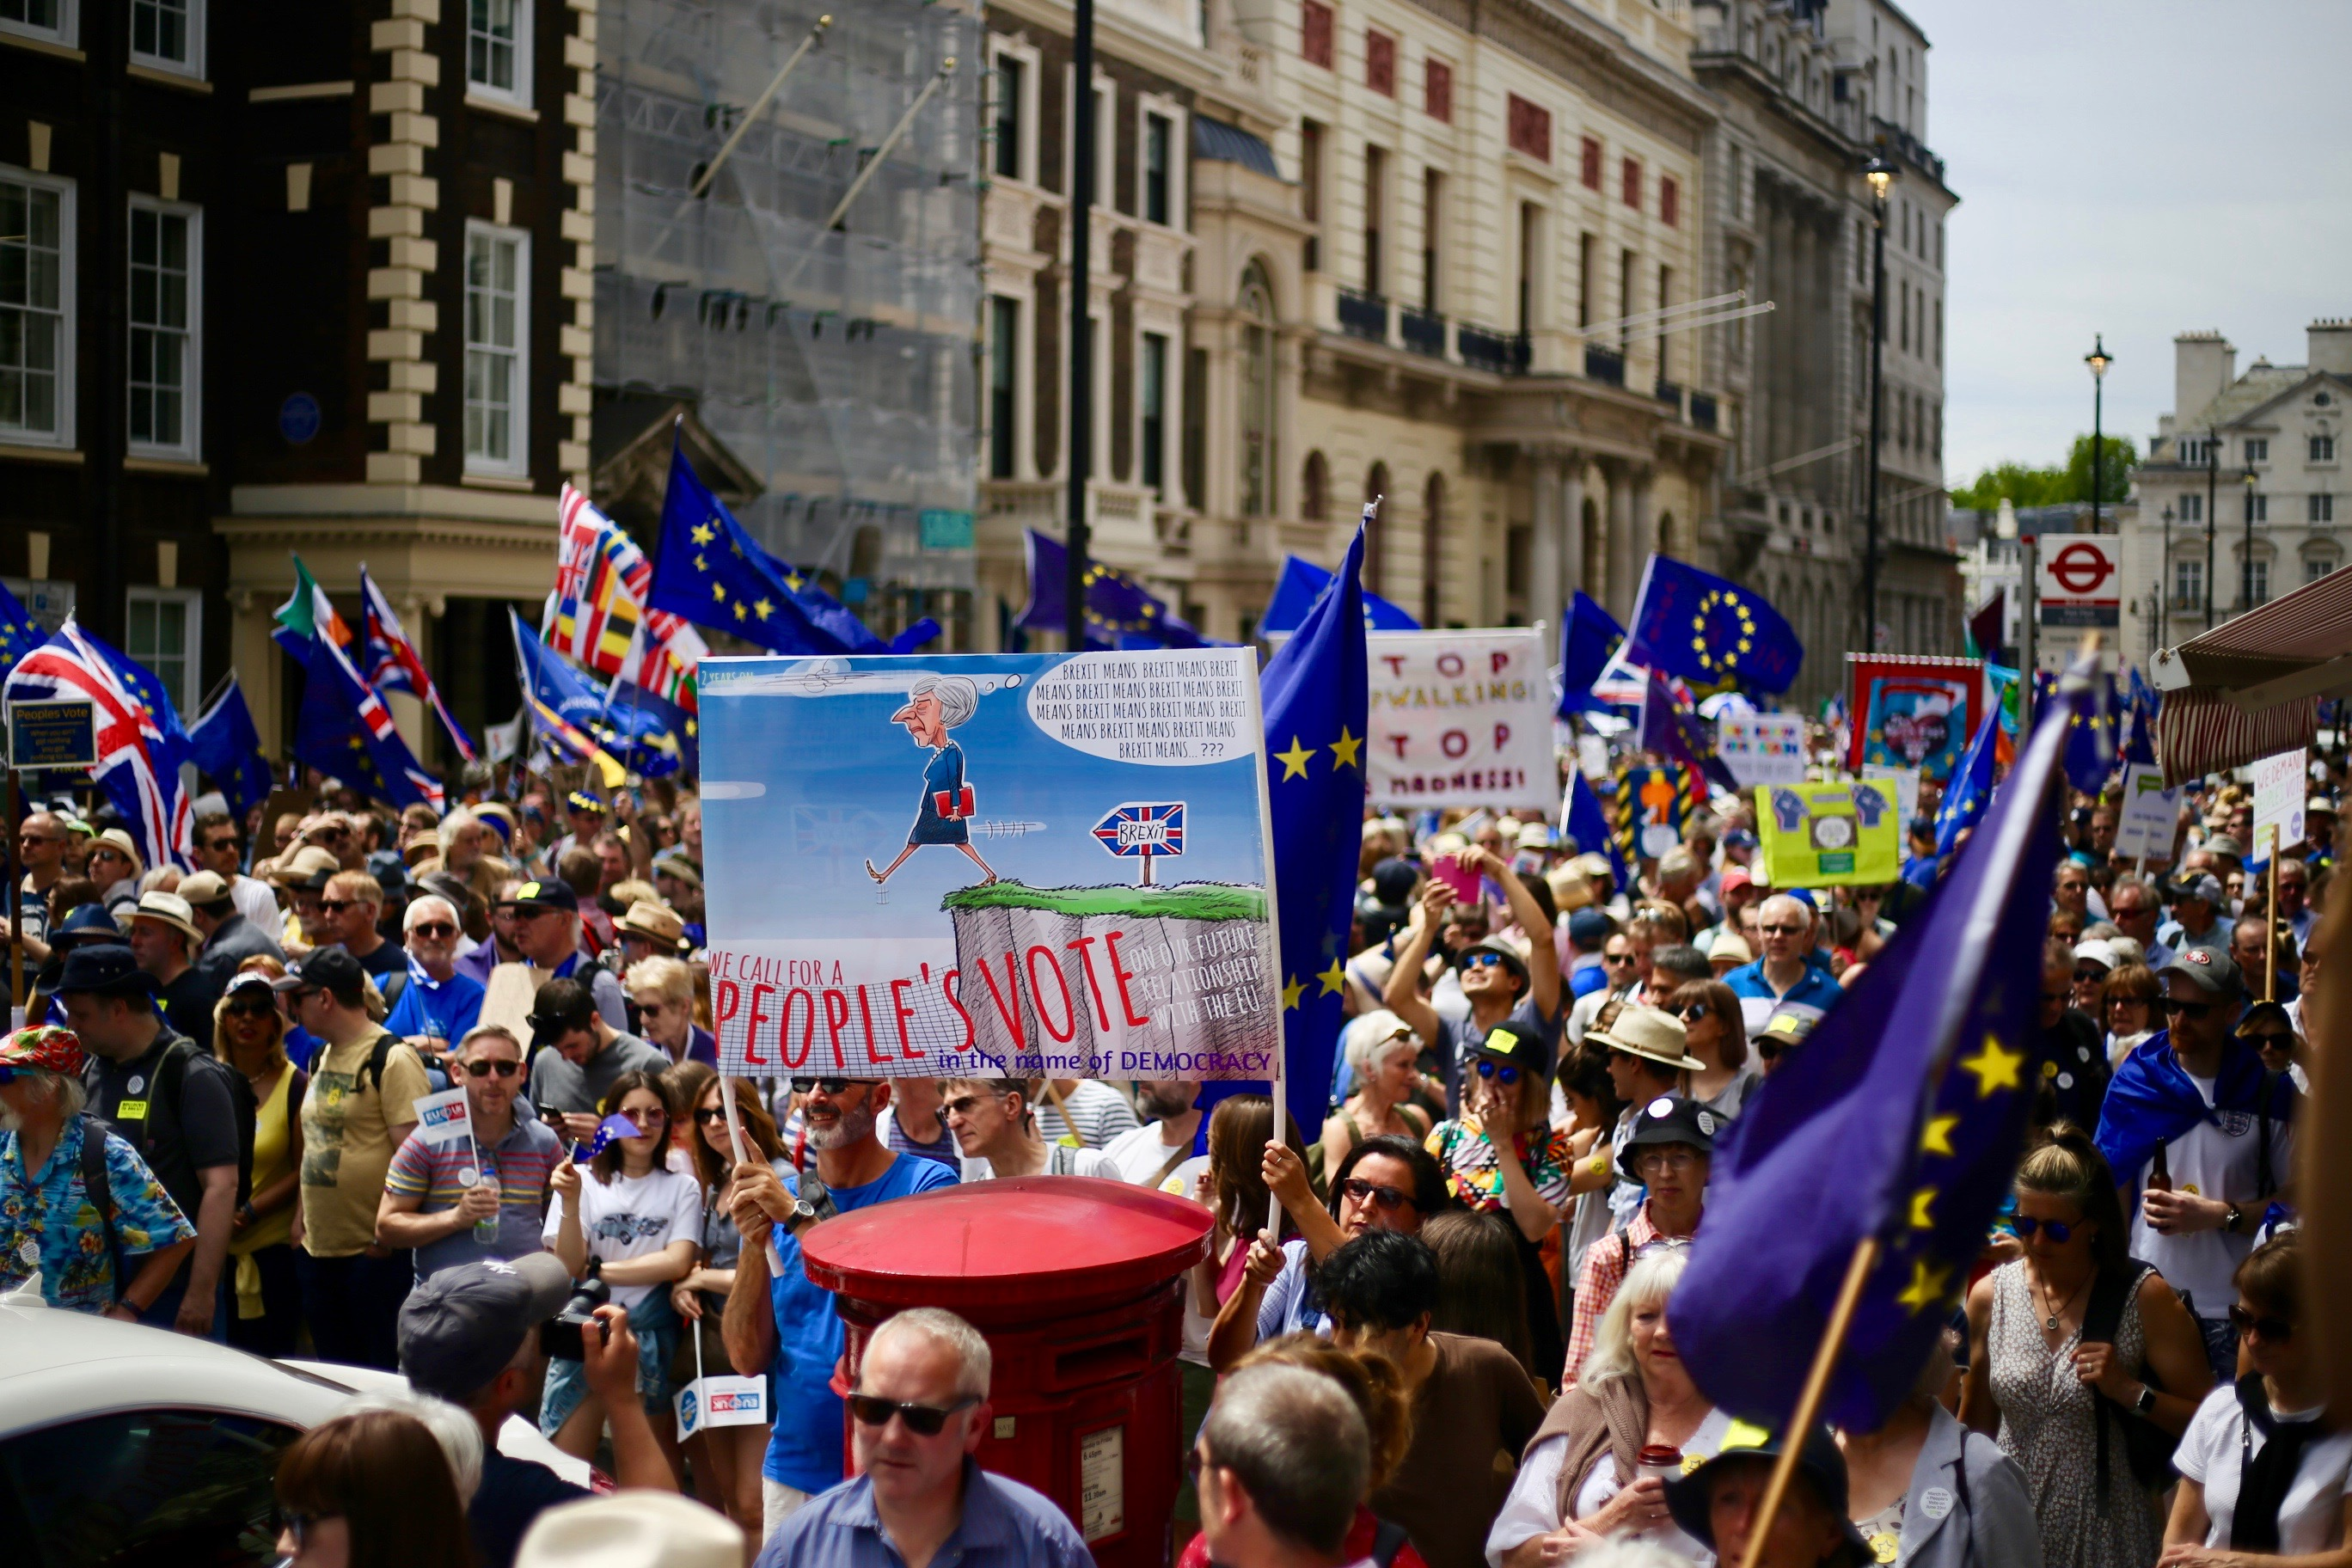 People's vote on Brexit march, London, June 23, 2018